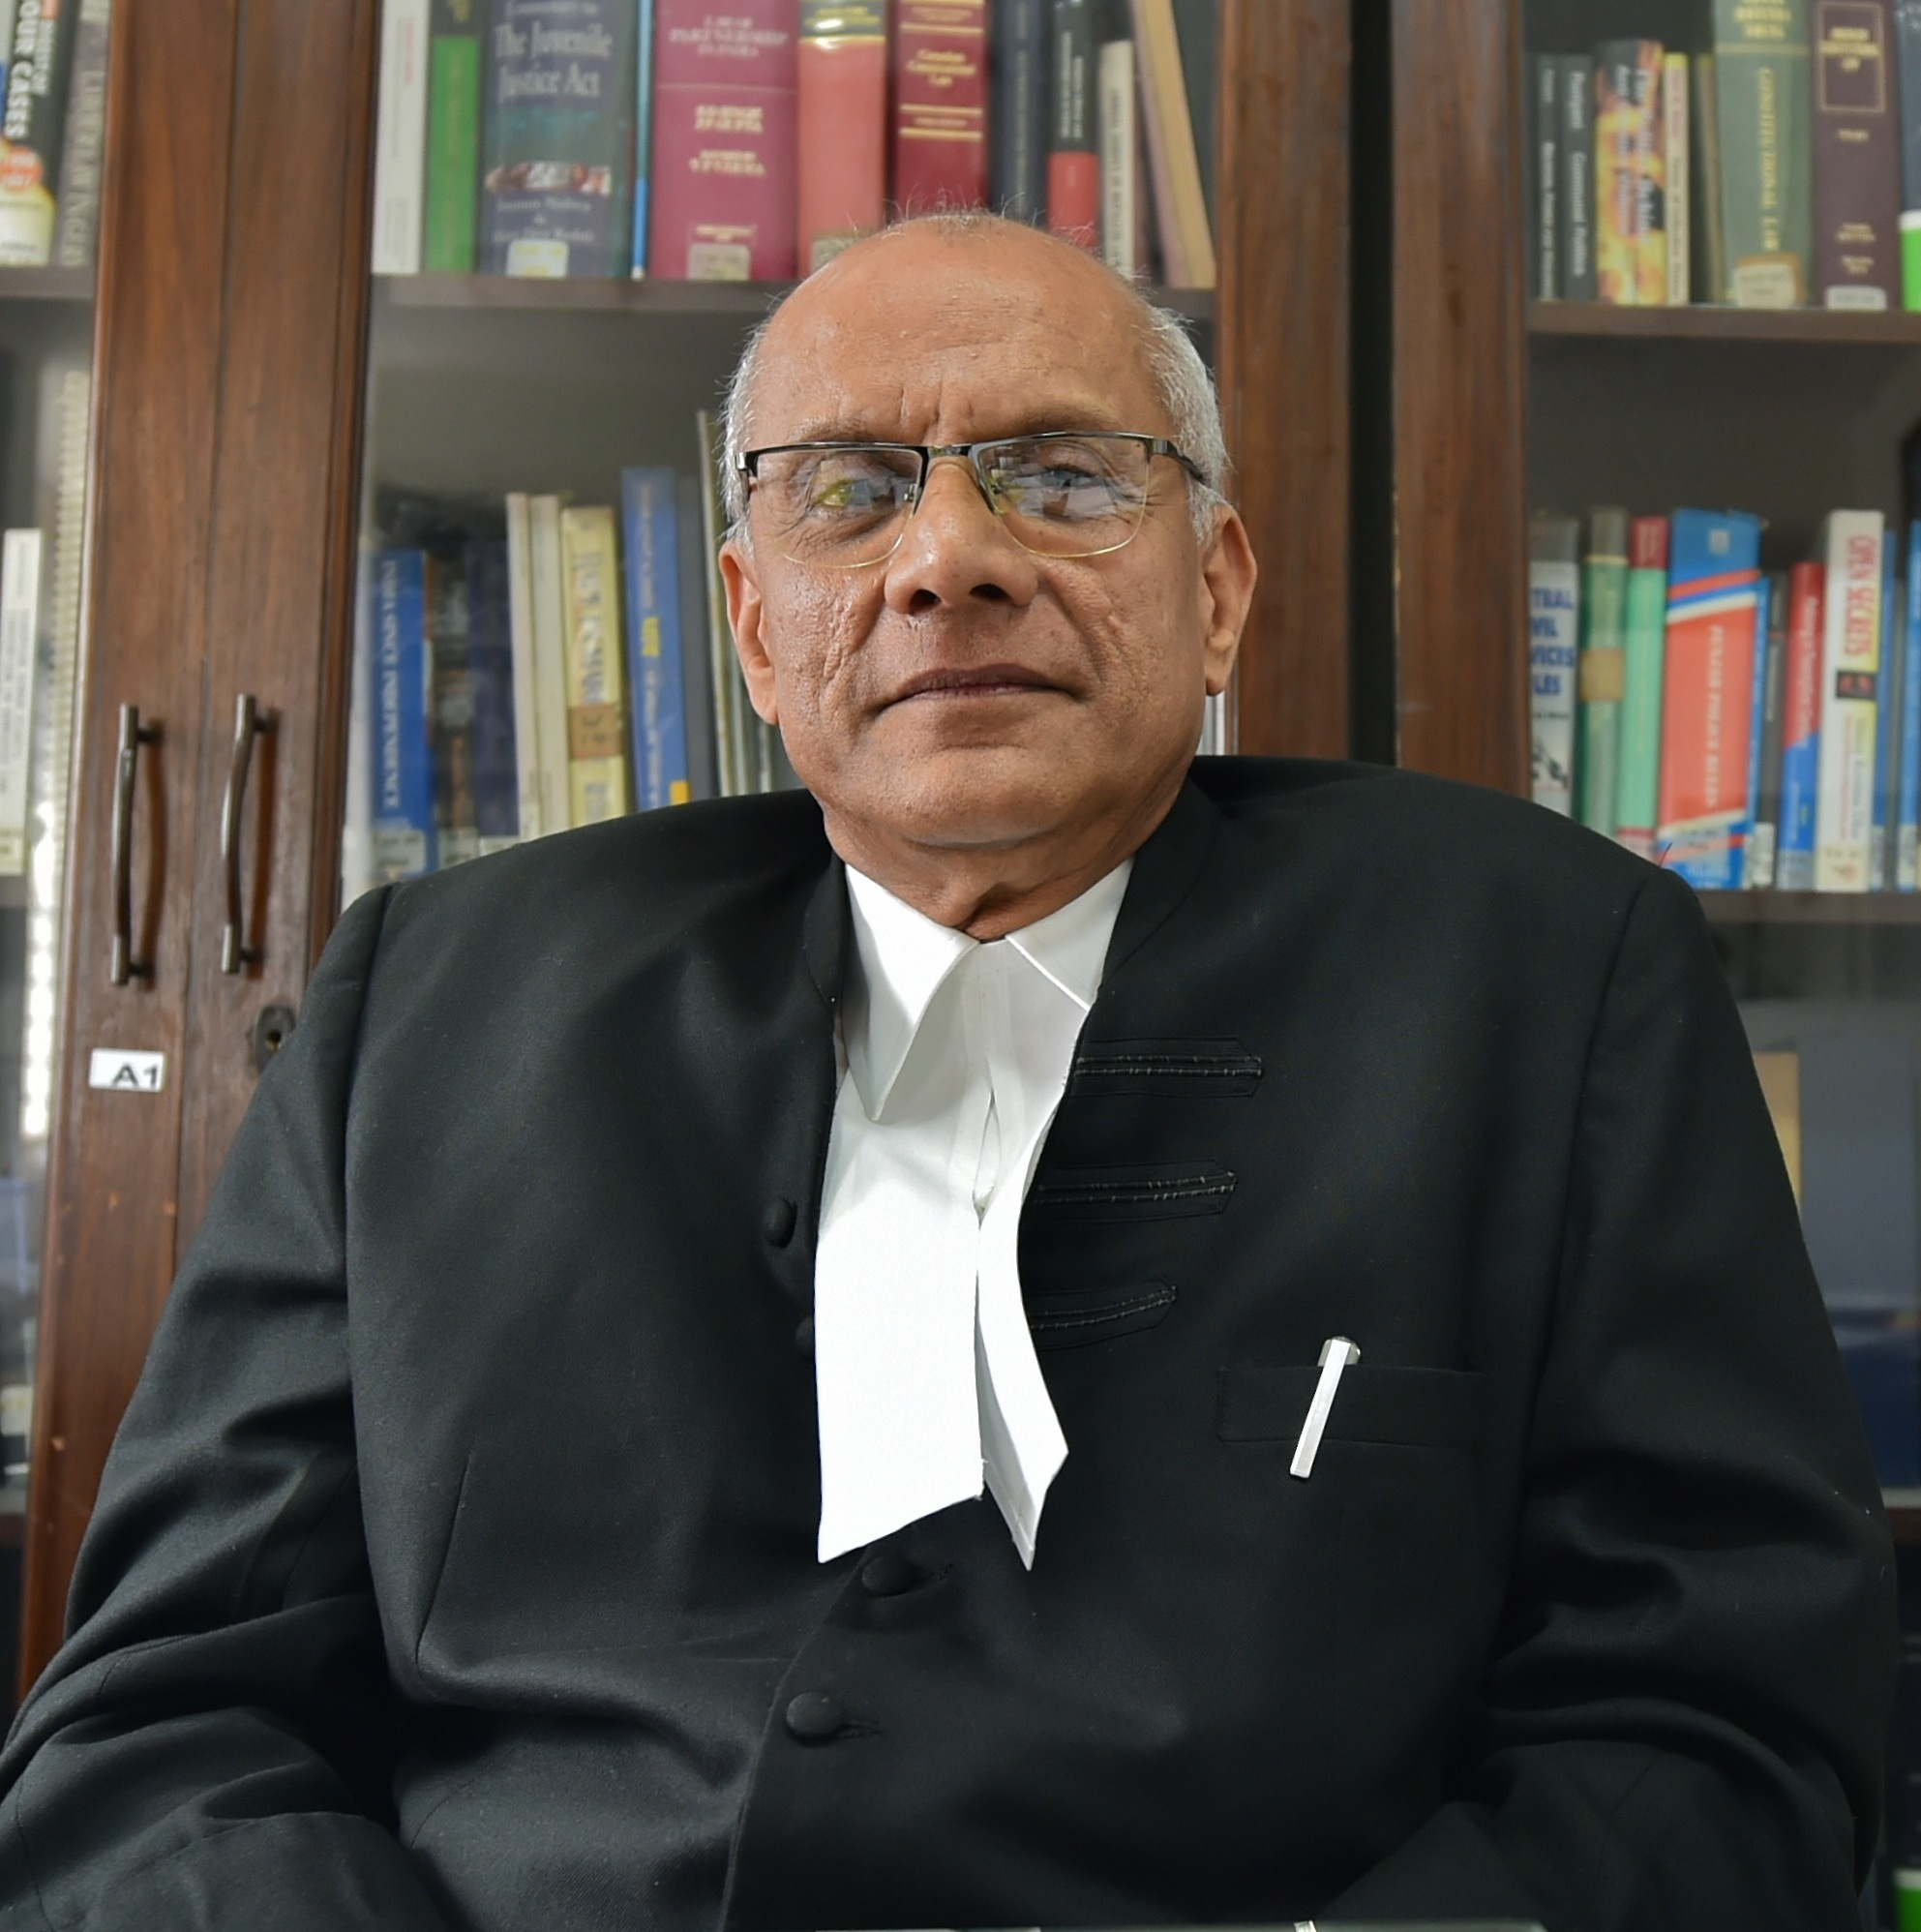 12/09/17New Delhi.Colin Gonsalves, senior advocate, Supreme Court of India in his office in Jungpura.Photo by Aayush Goel